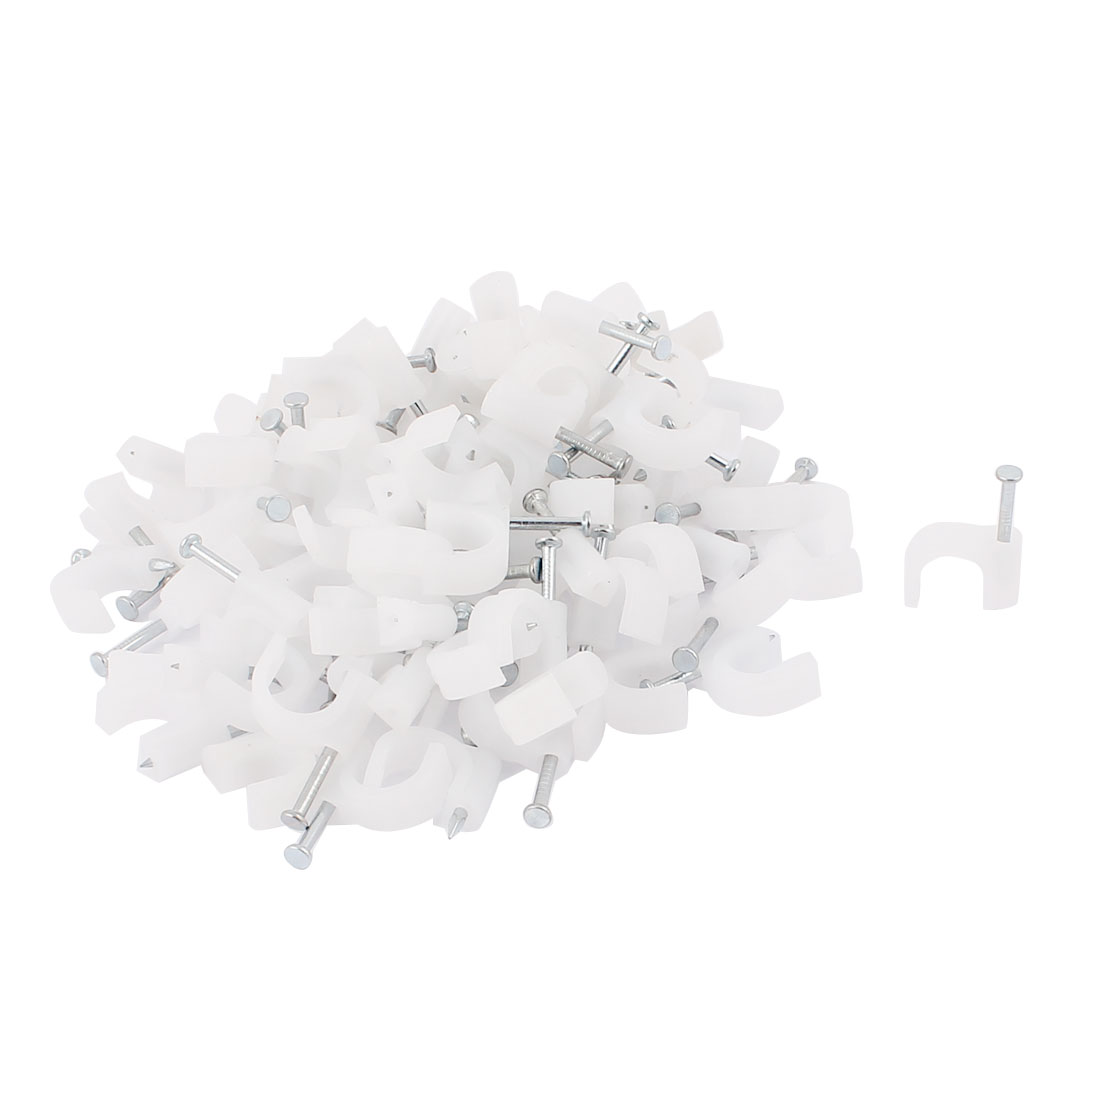 Round Cable Wire Clips Fastener 10mm Diameter w Fixing Nails 100Pcs White